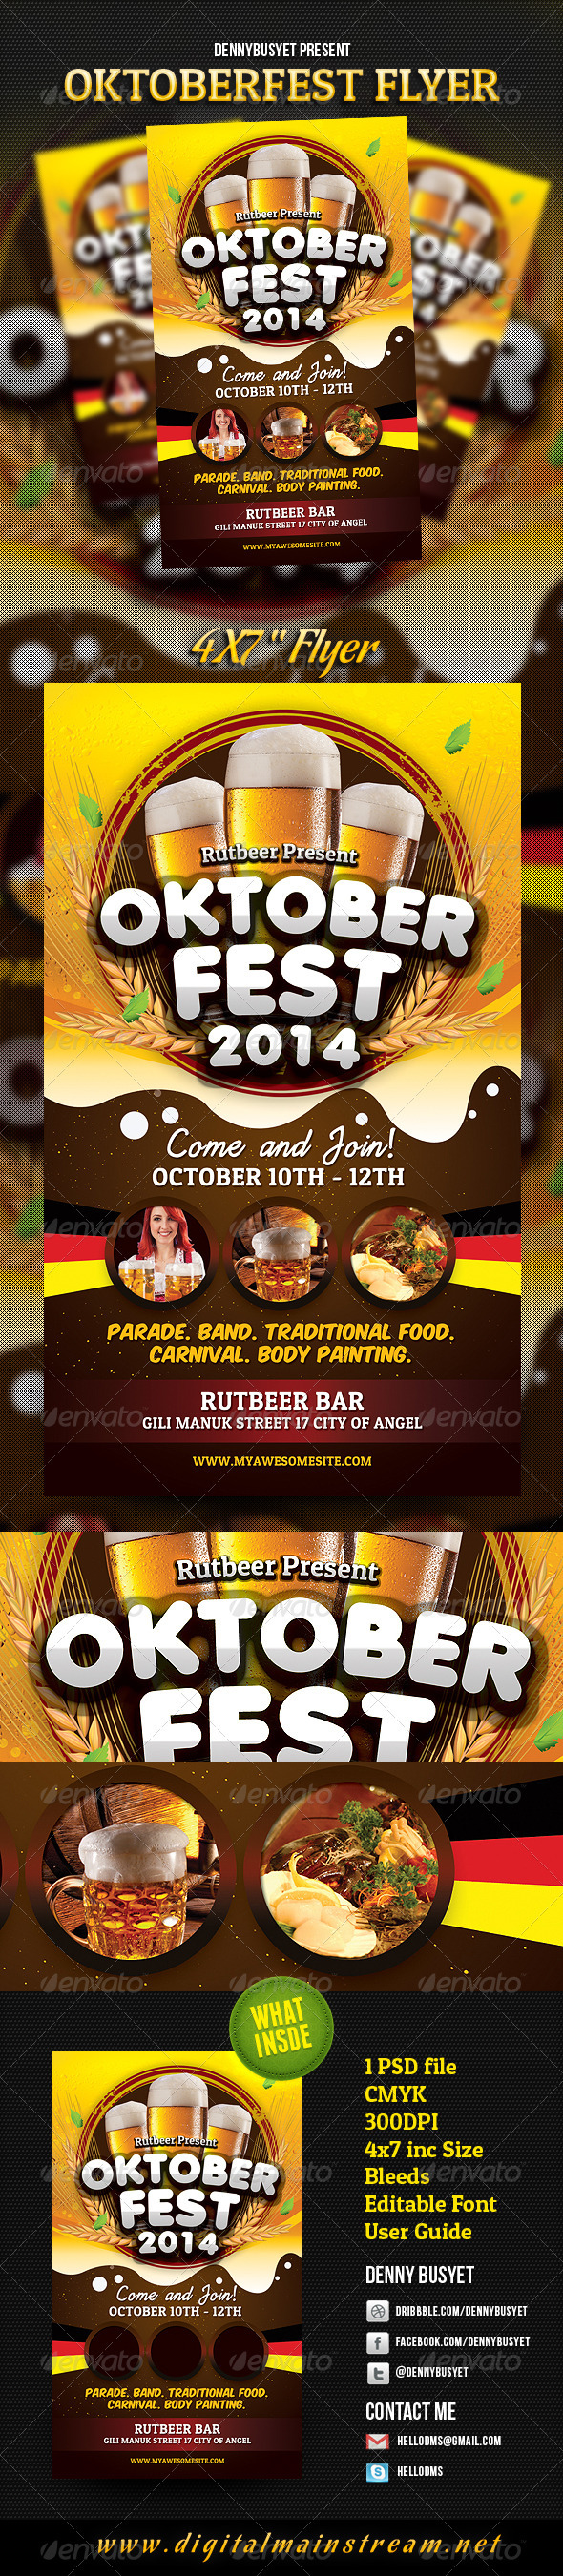 Oktoberfest Flyer Template - Events Flyers